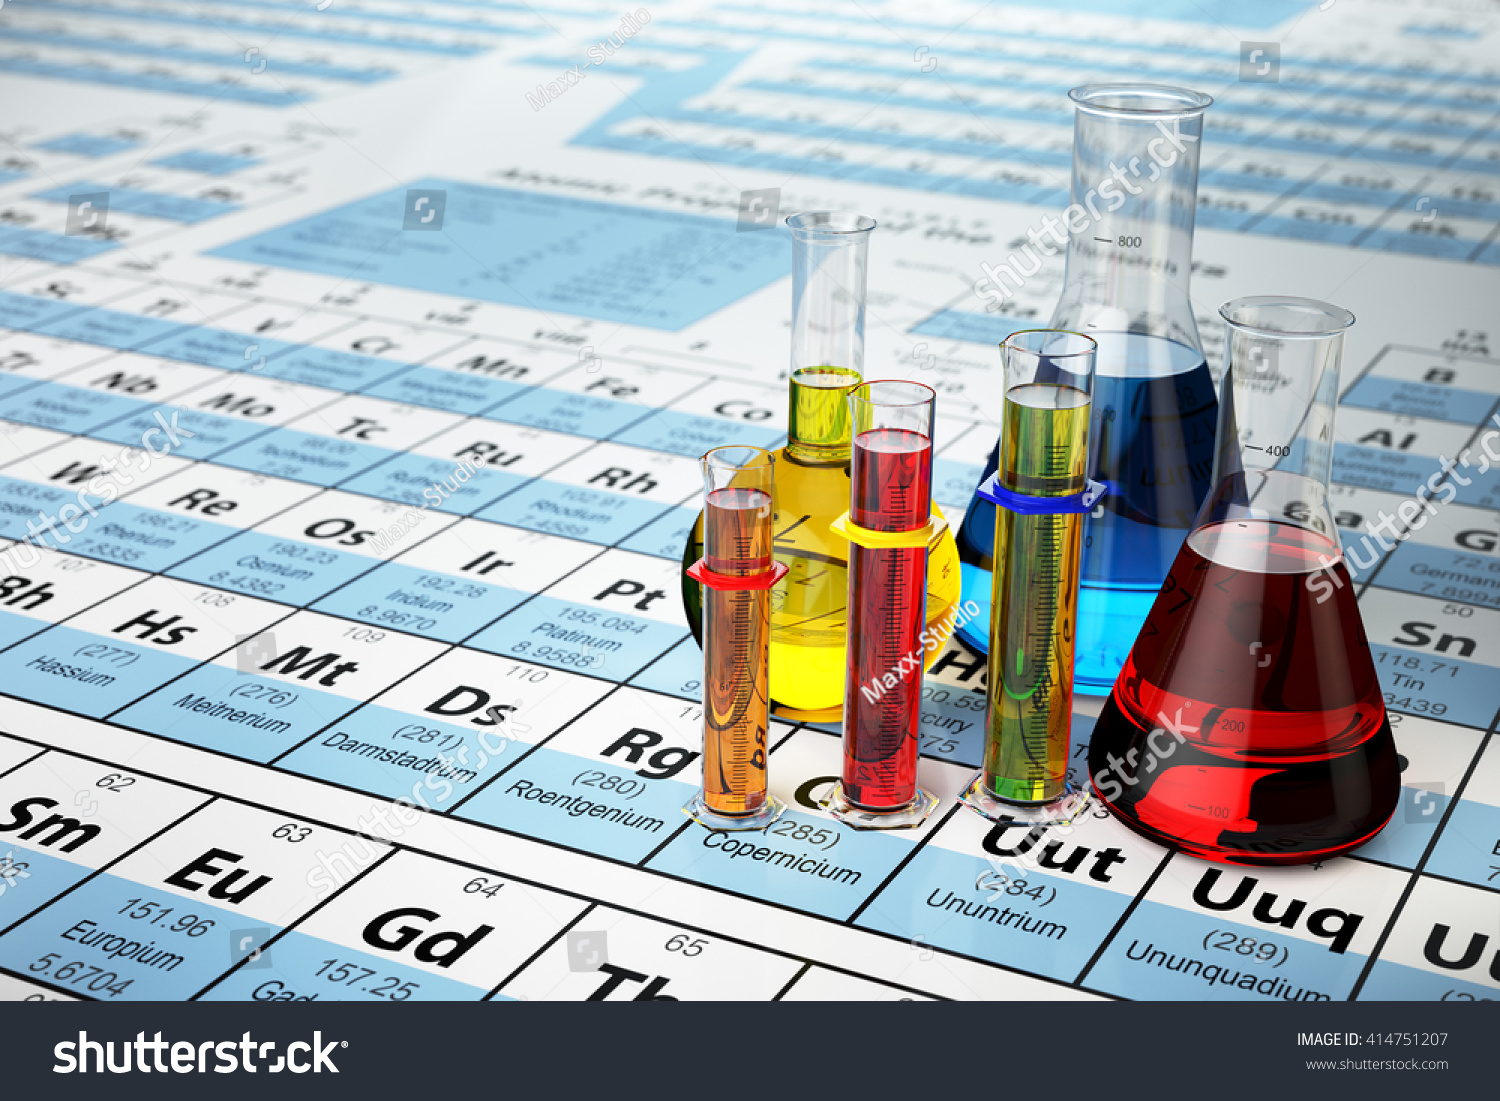 Science chemistry concept laboratory test tubes stock illustration laboratory test tubes and flasks with colored liquids on the periodic table gamestrikefo Choice Image